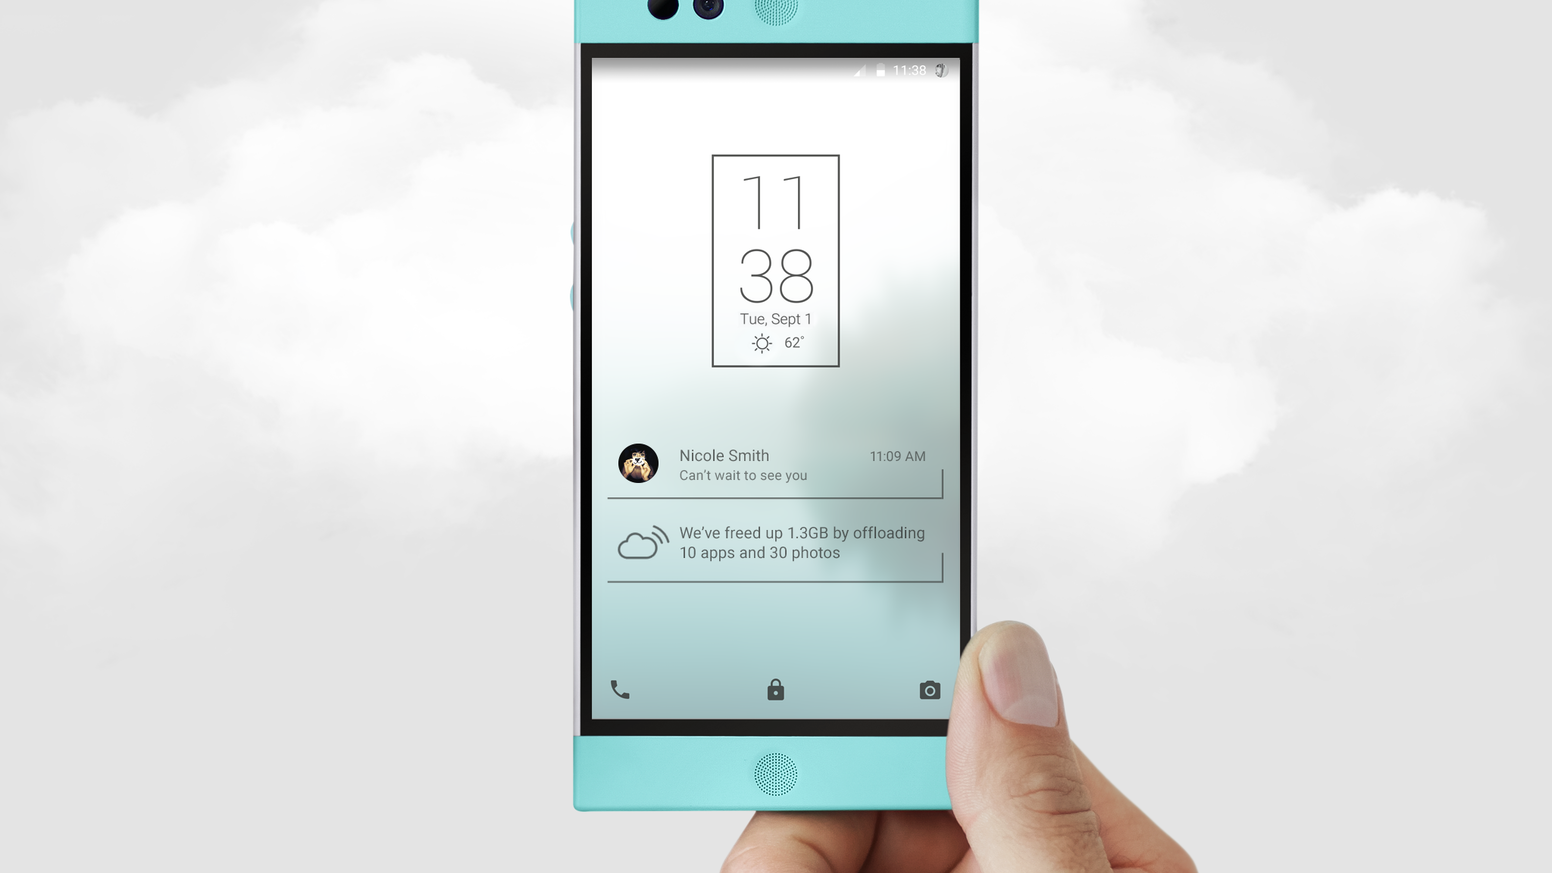 Robin The Smarter Smartphone By Nextbit Kickstarter Lcd Touchscreen Oppo R7s Complite Original Is Only Cloud First It Gets Every Day And Makes